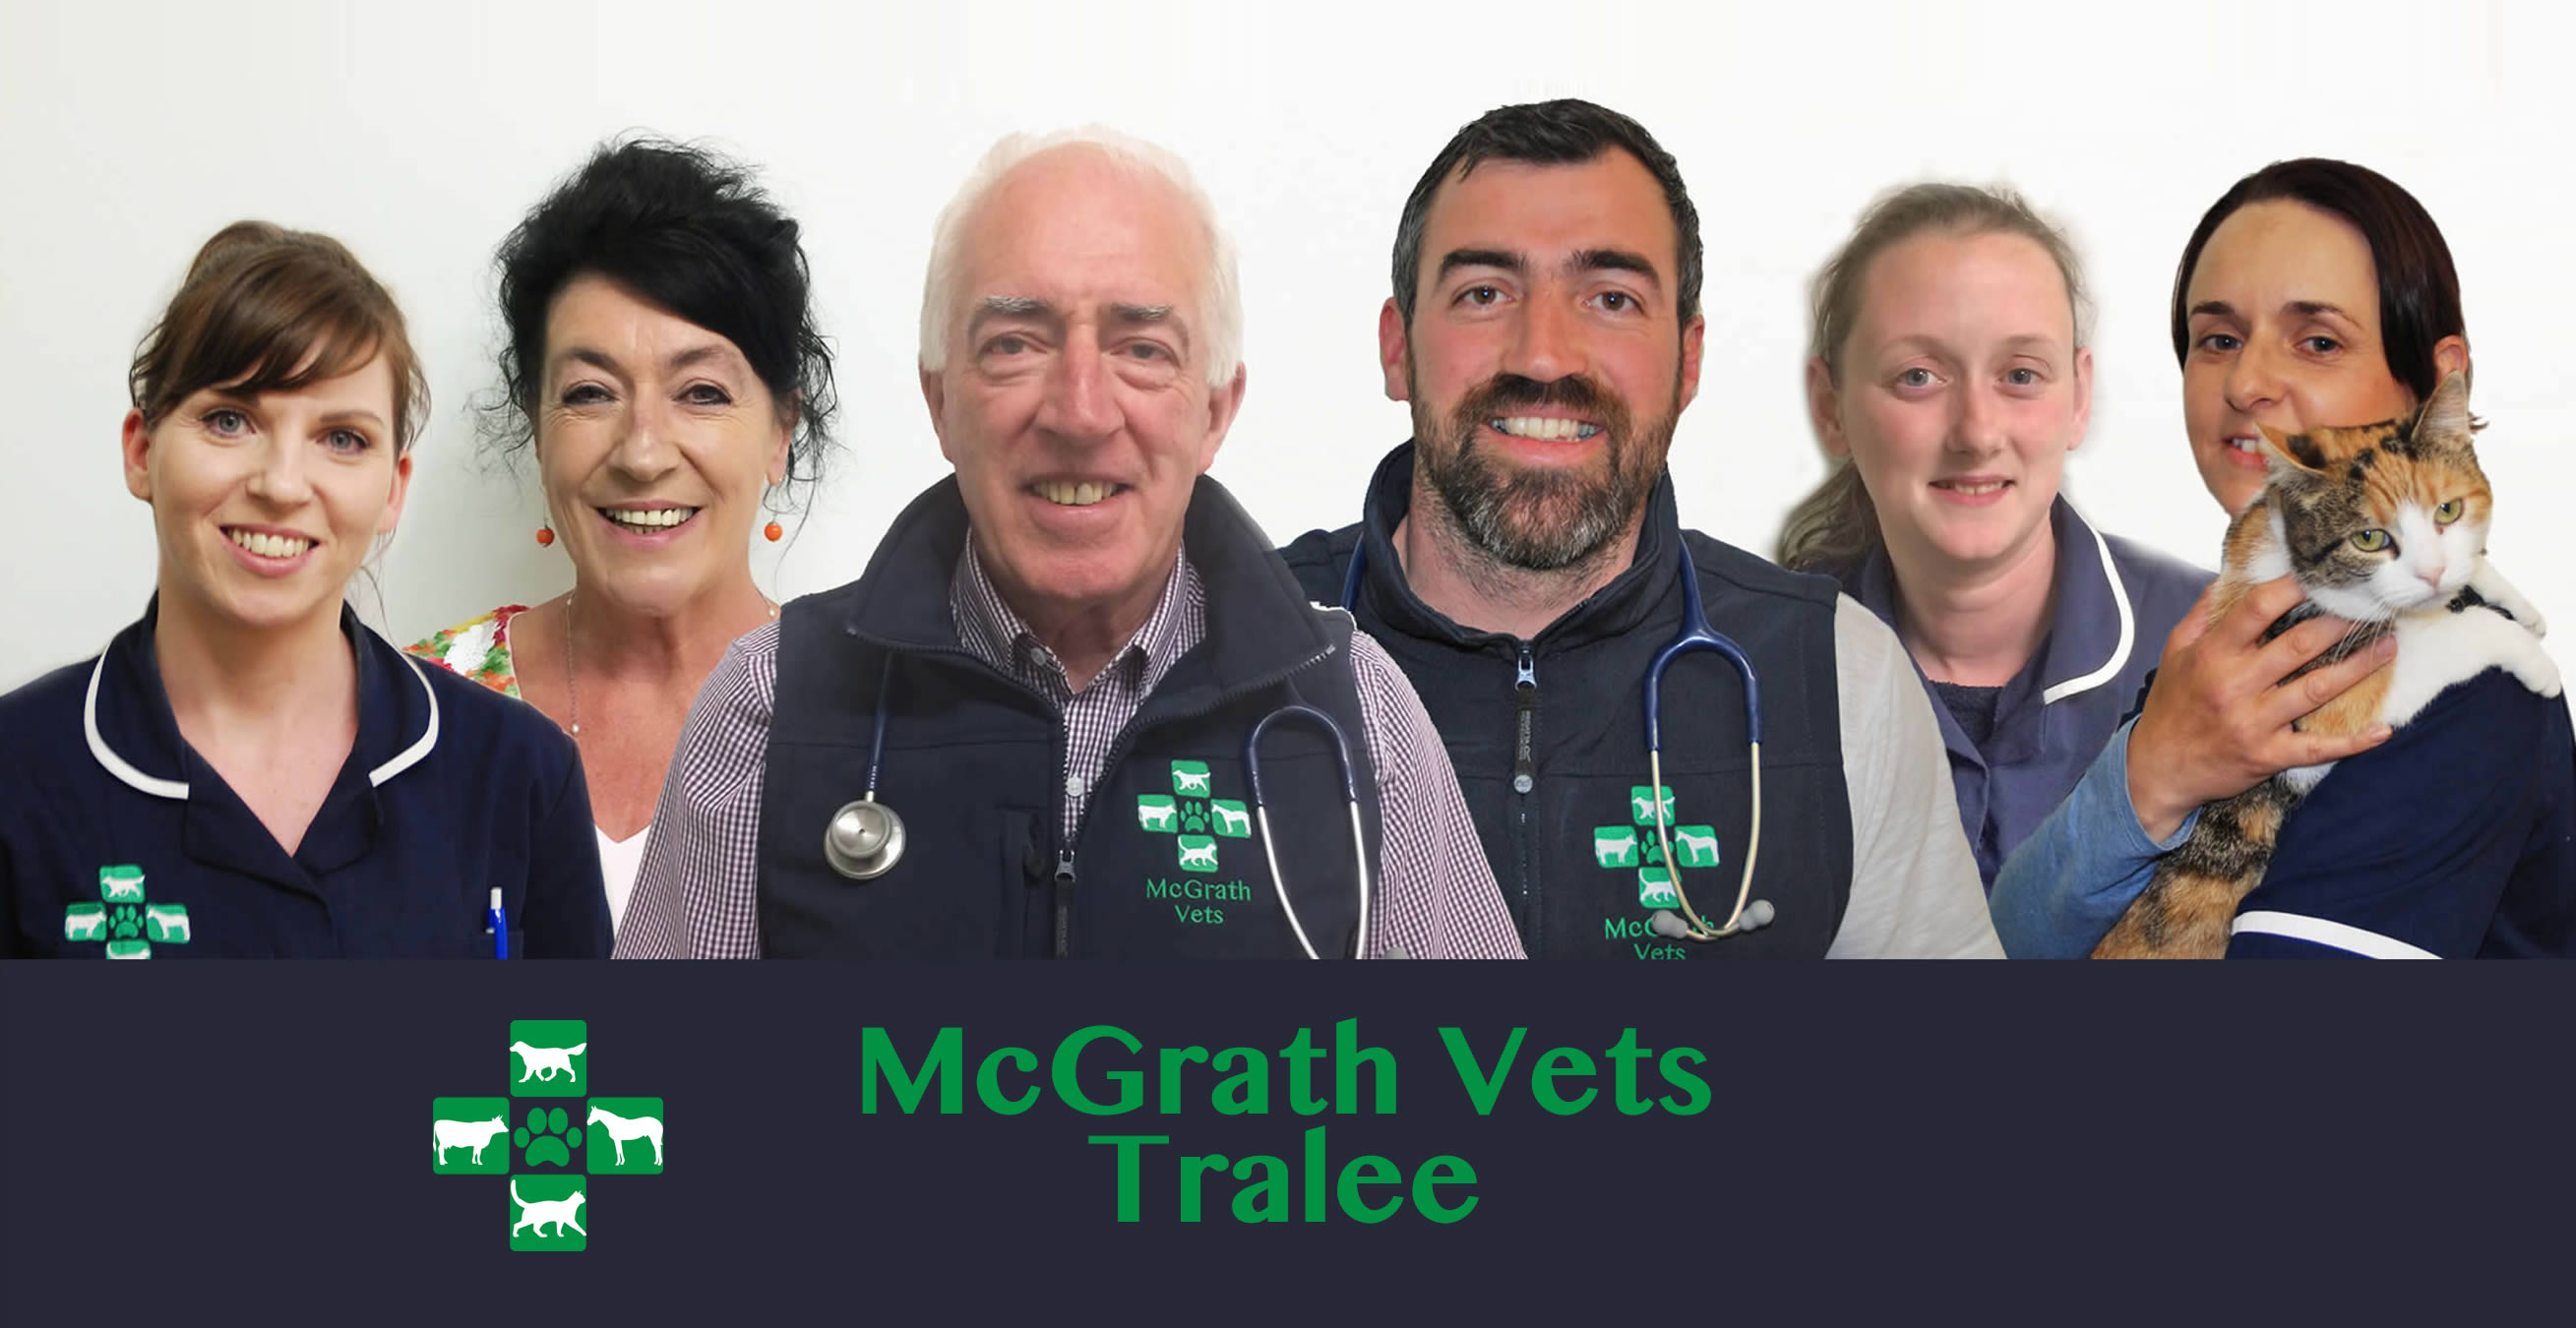 McGrath Vets Staff